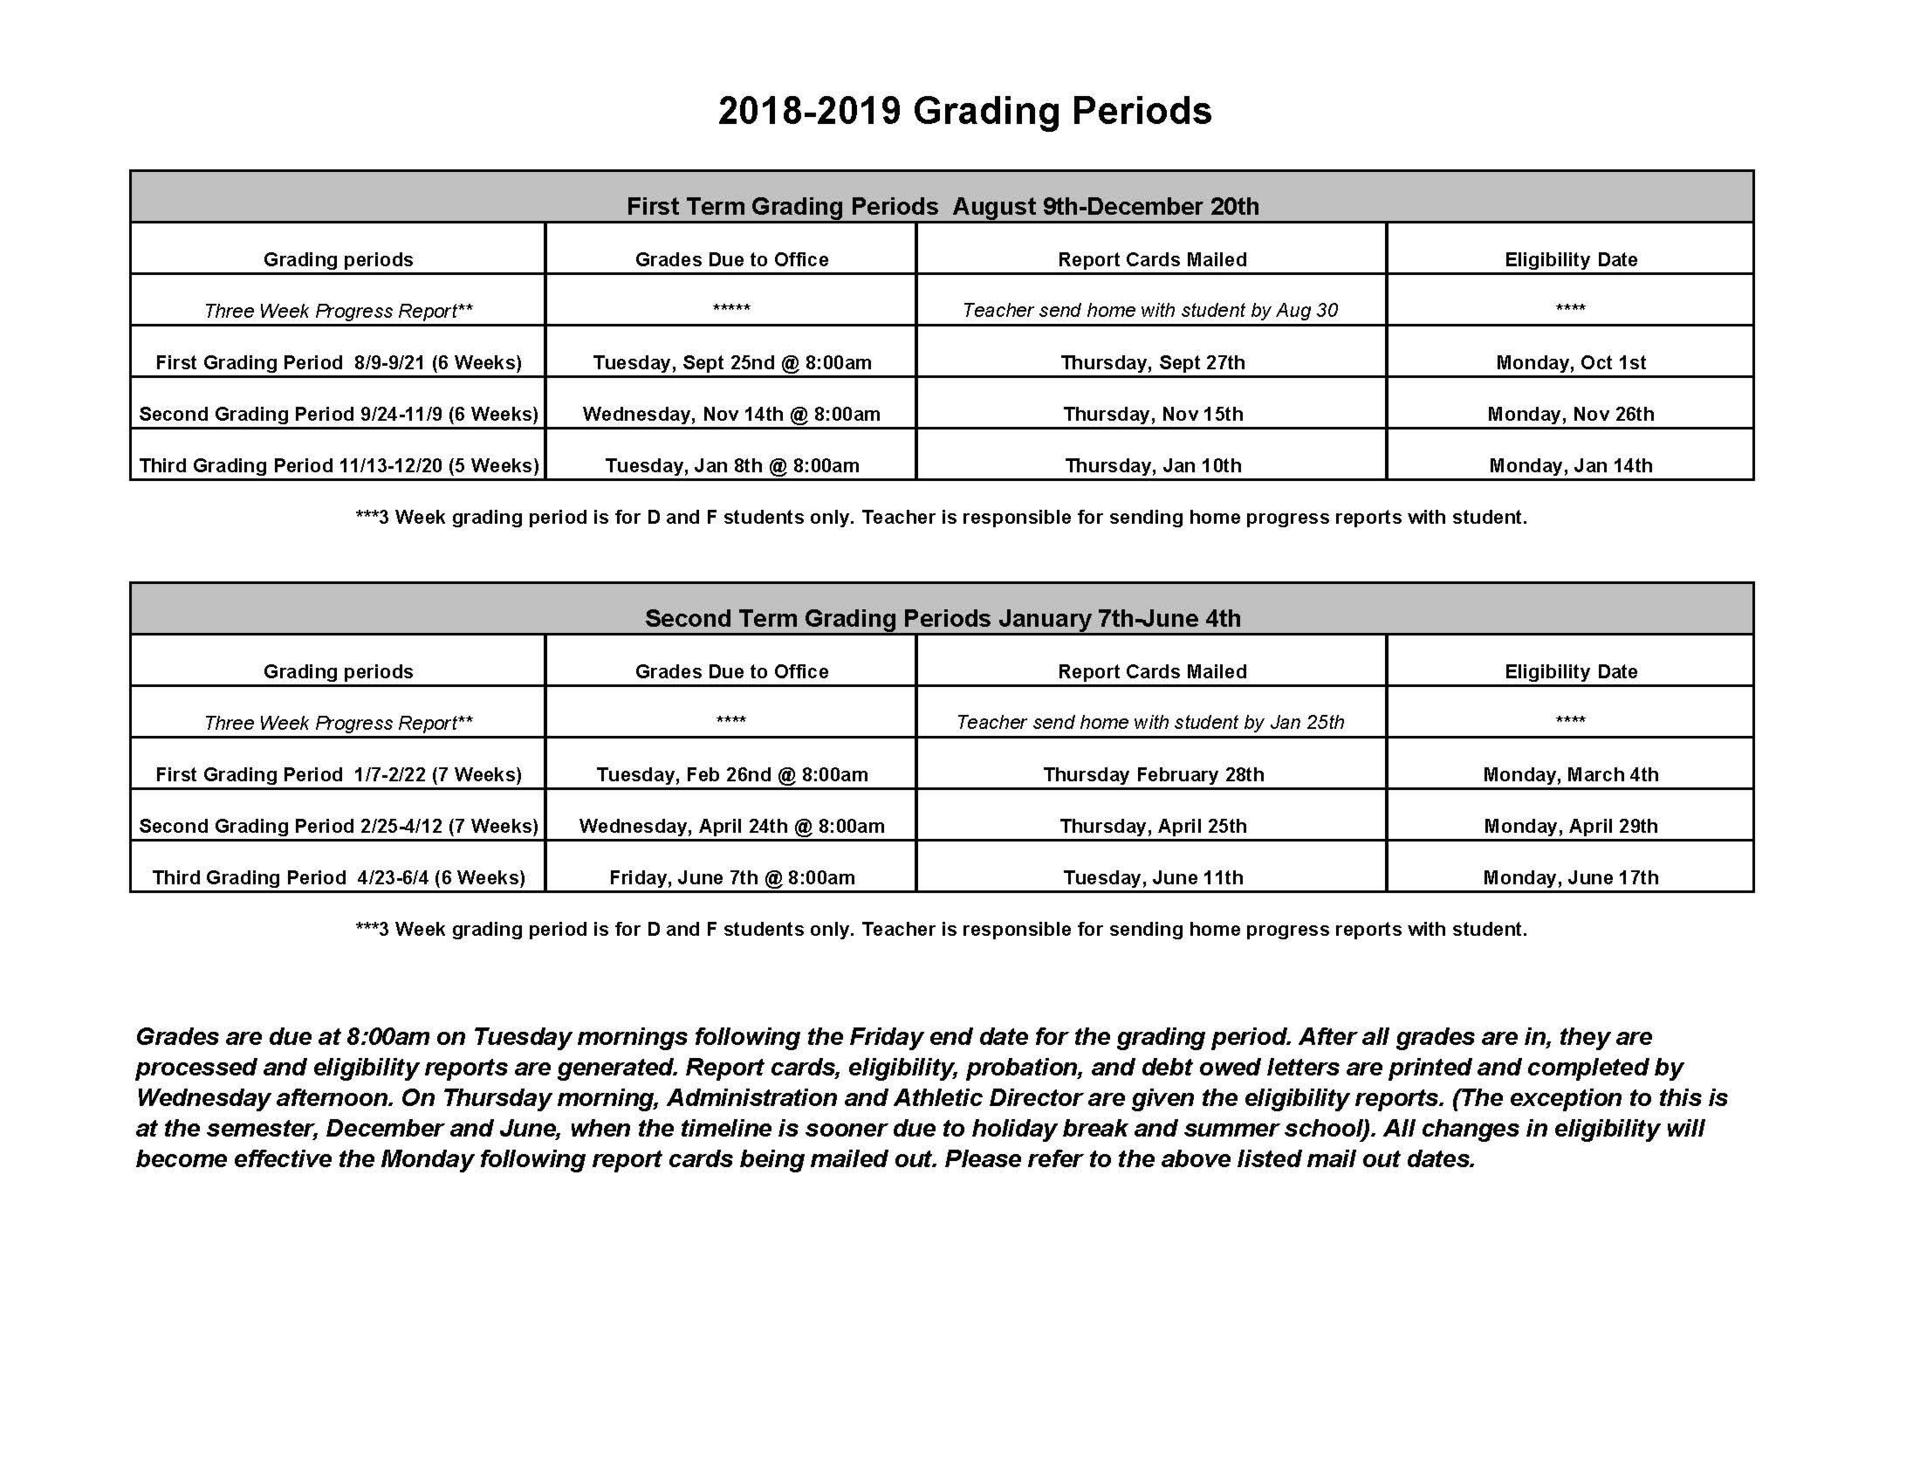 2018-19 Grading Periods Chart